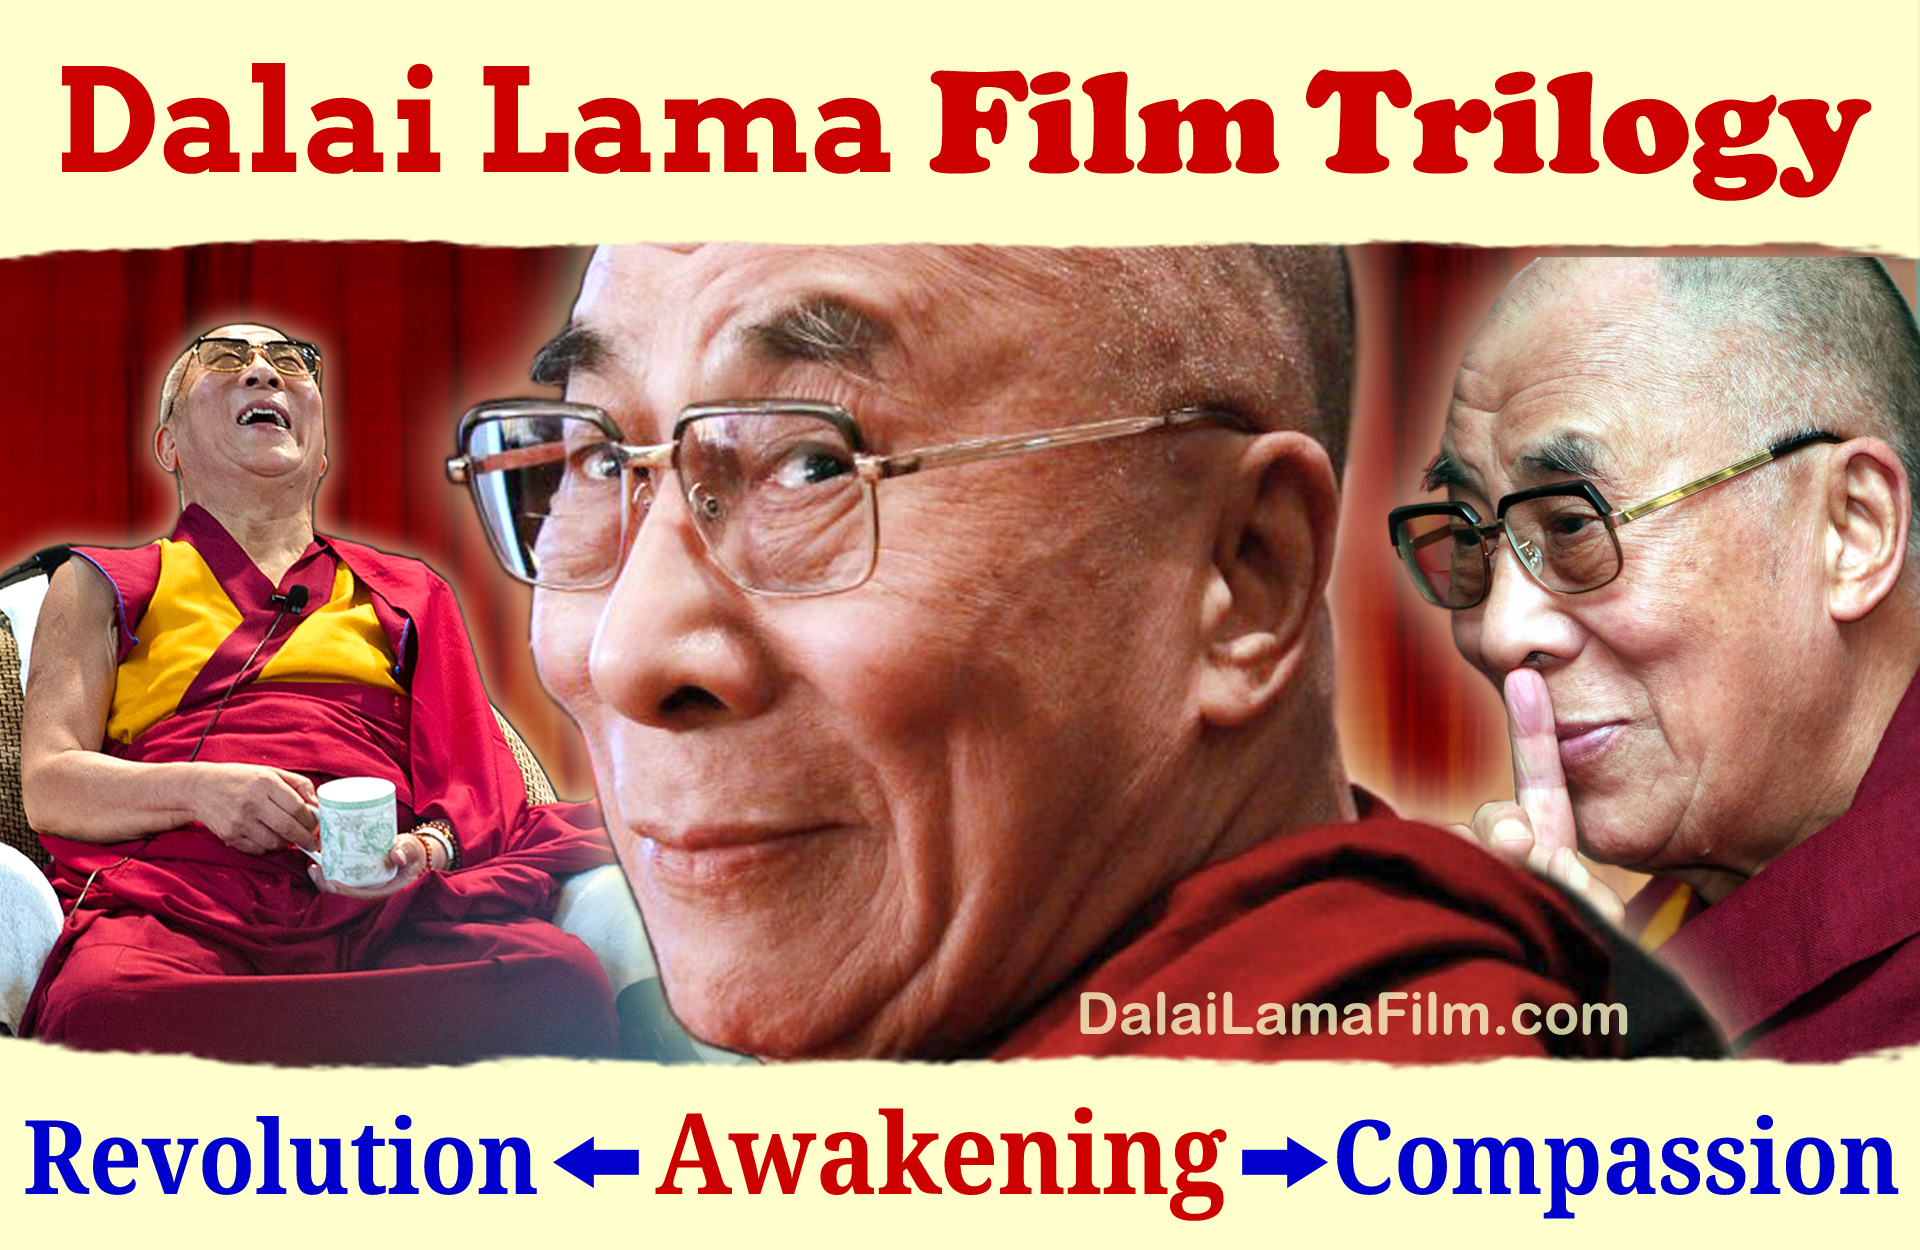 dalai-lama-film-trilogy-ad-v2-3-dalai-lamas-top-and-bottom-text-url-on-image-red-awakening-1920x1250